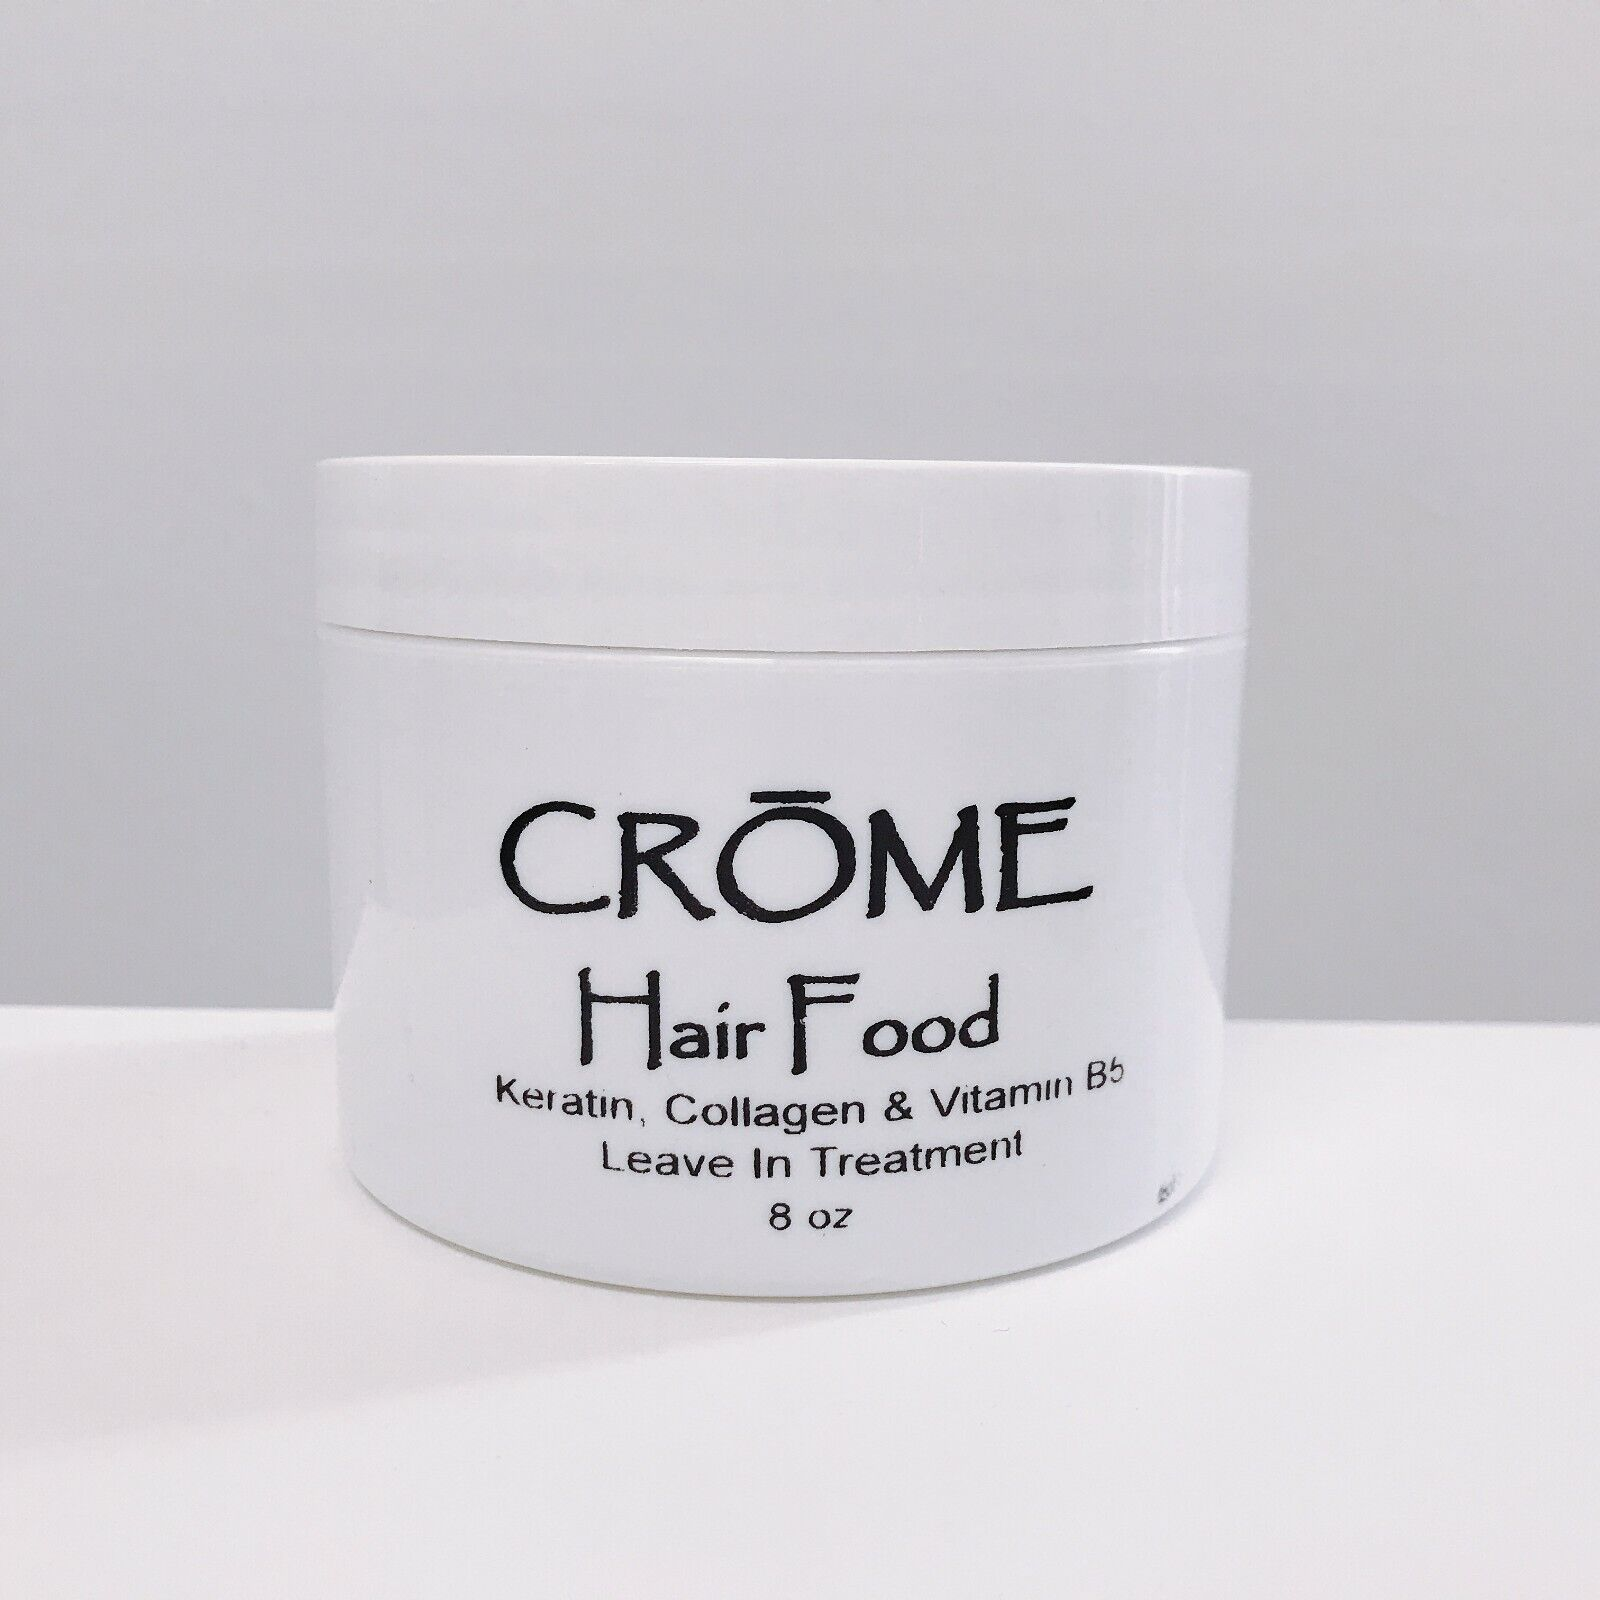 hair food leave in treatment with keratin